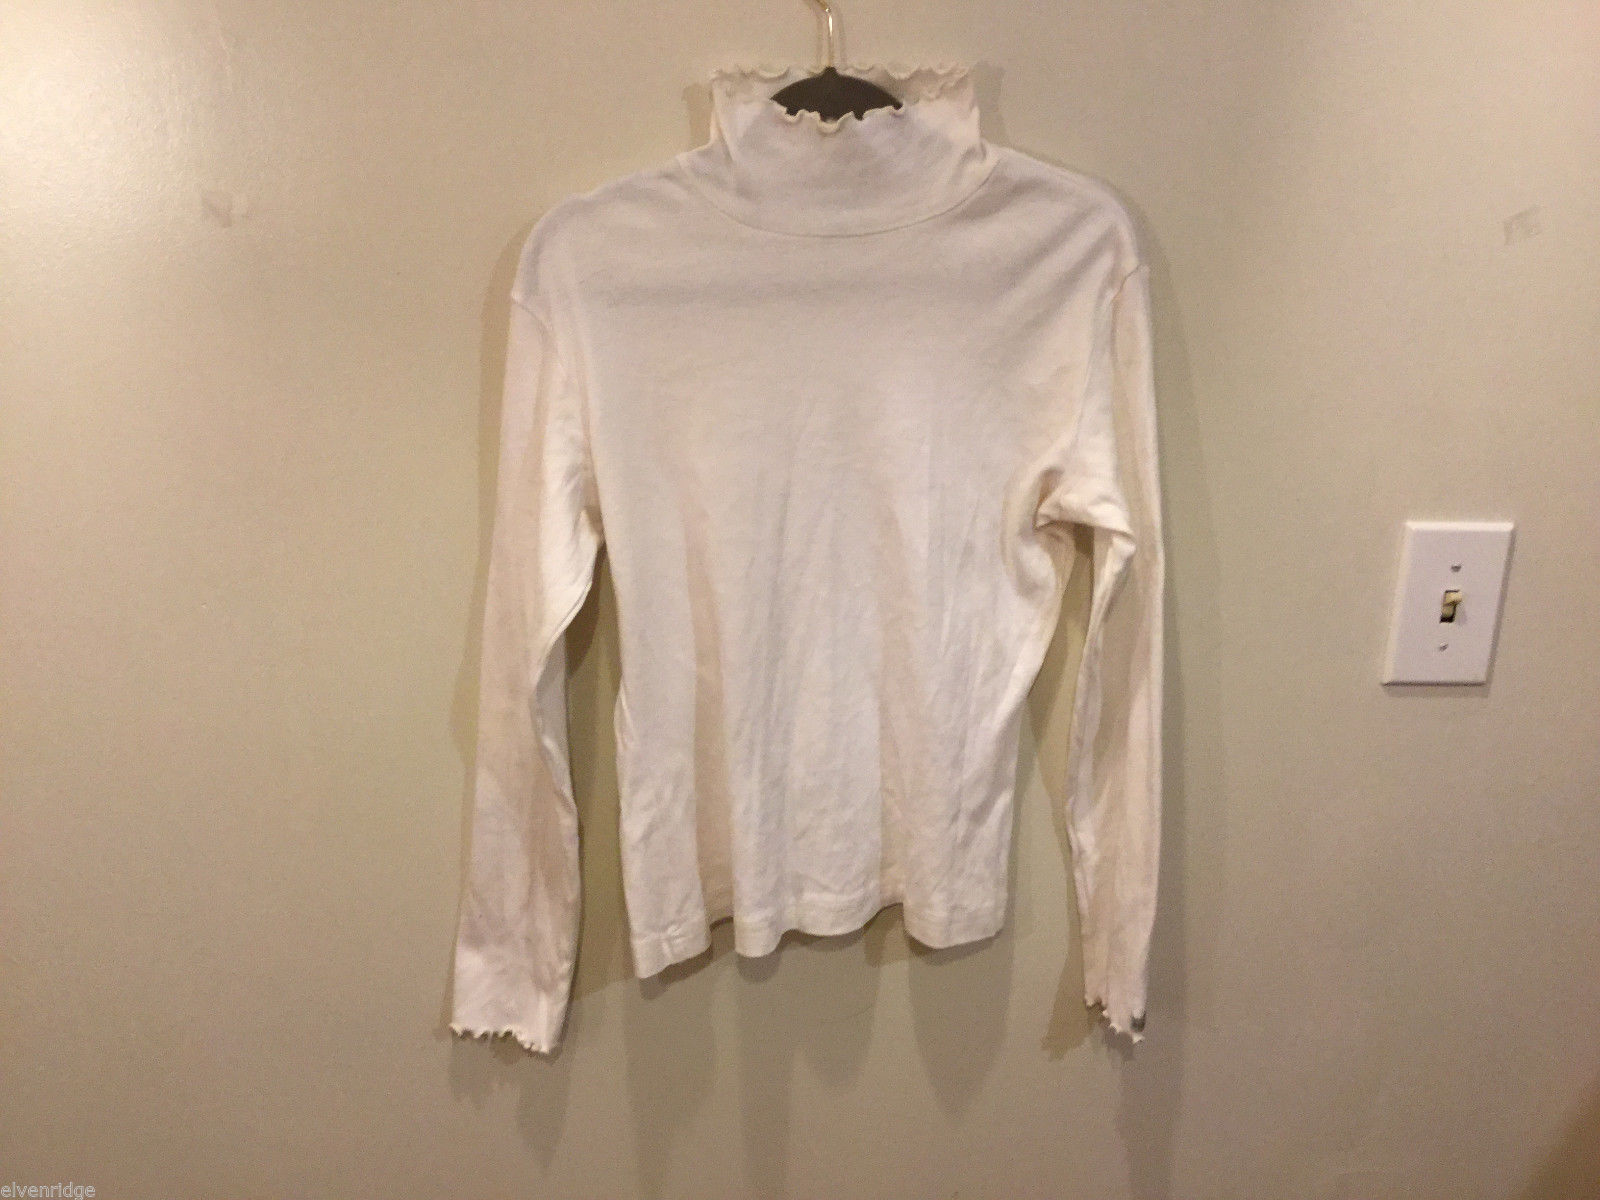 Columbia Womens 100% cotton White Turtleneck Sweater, Size M